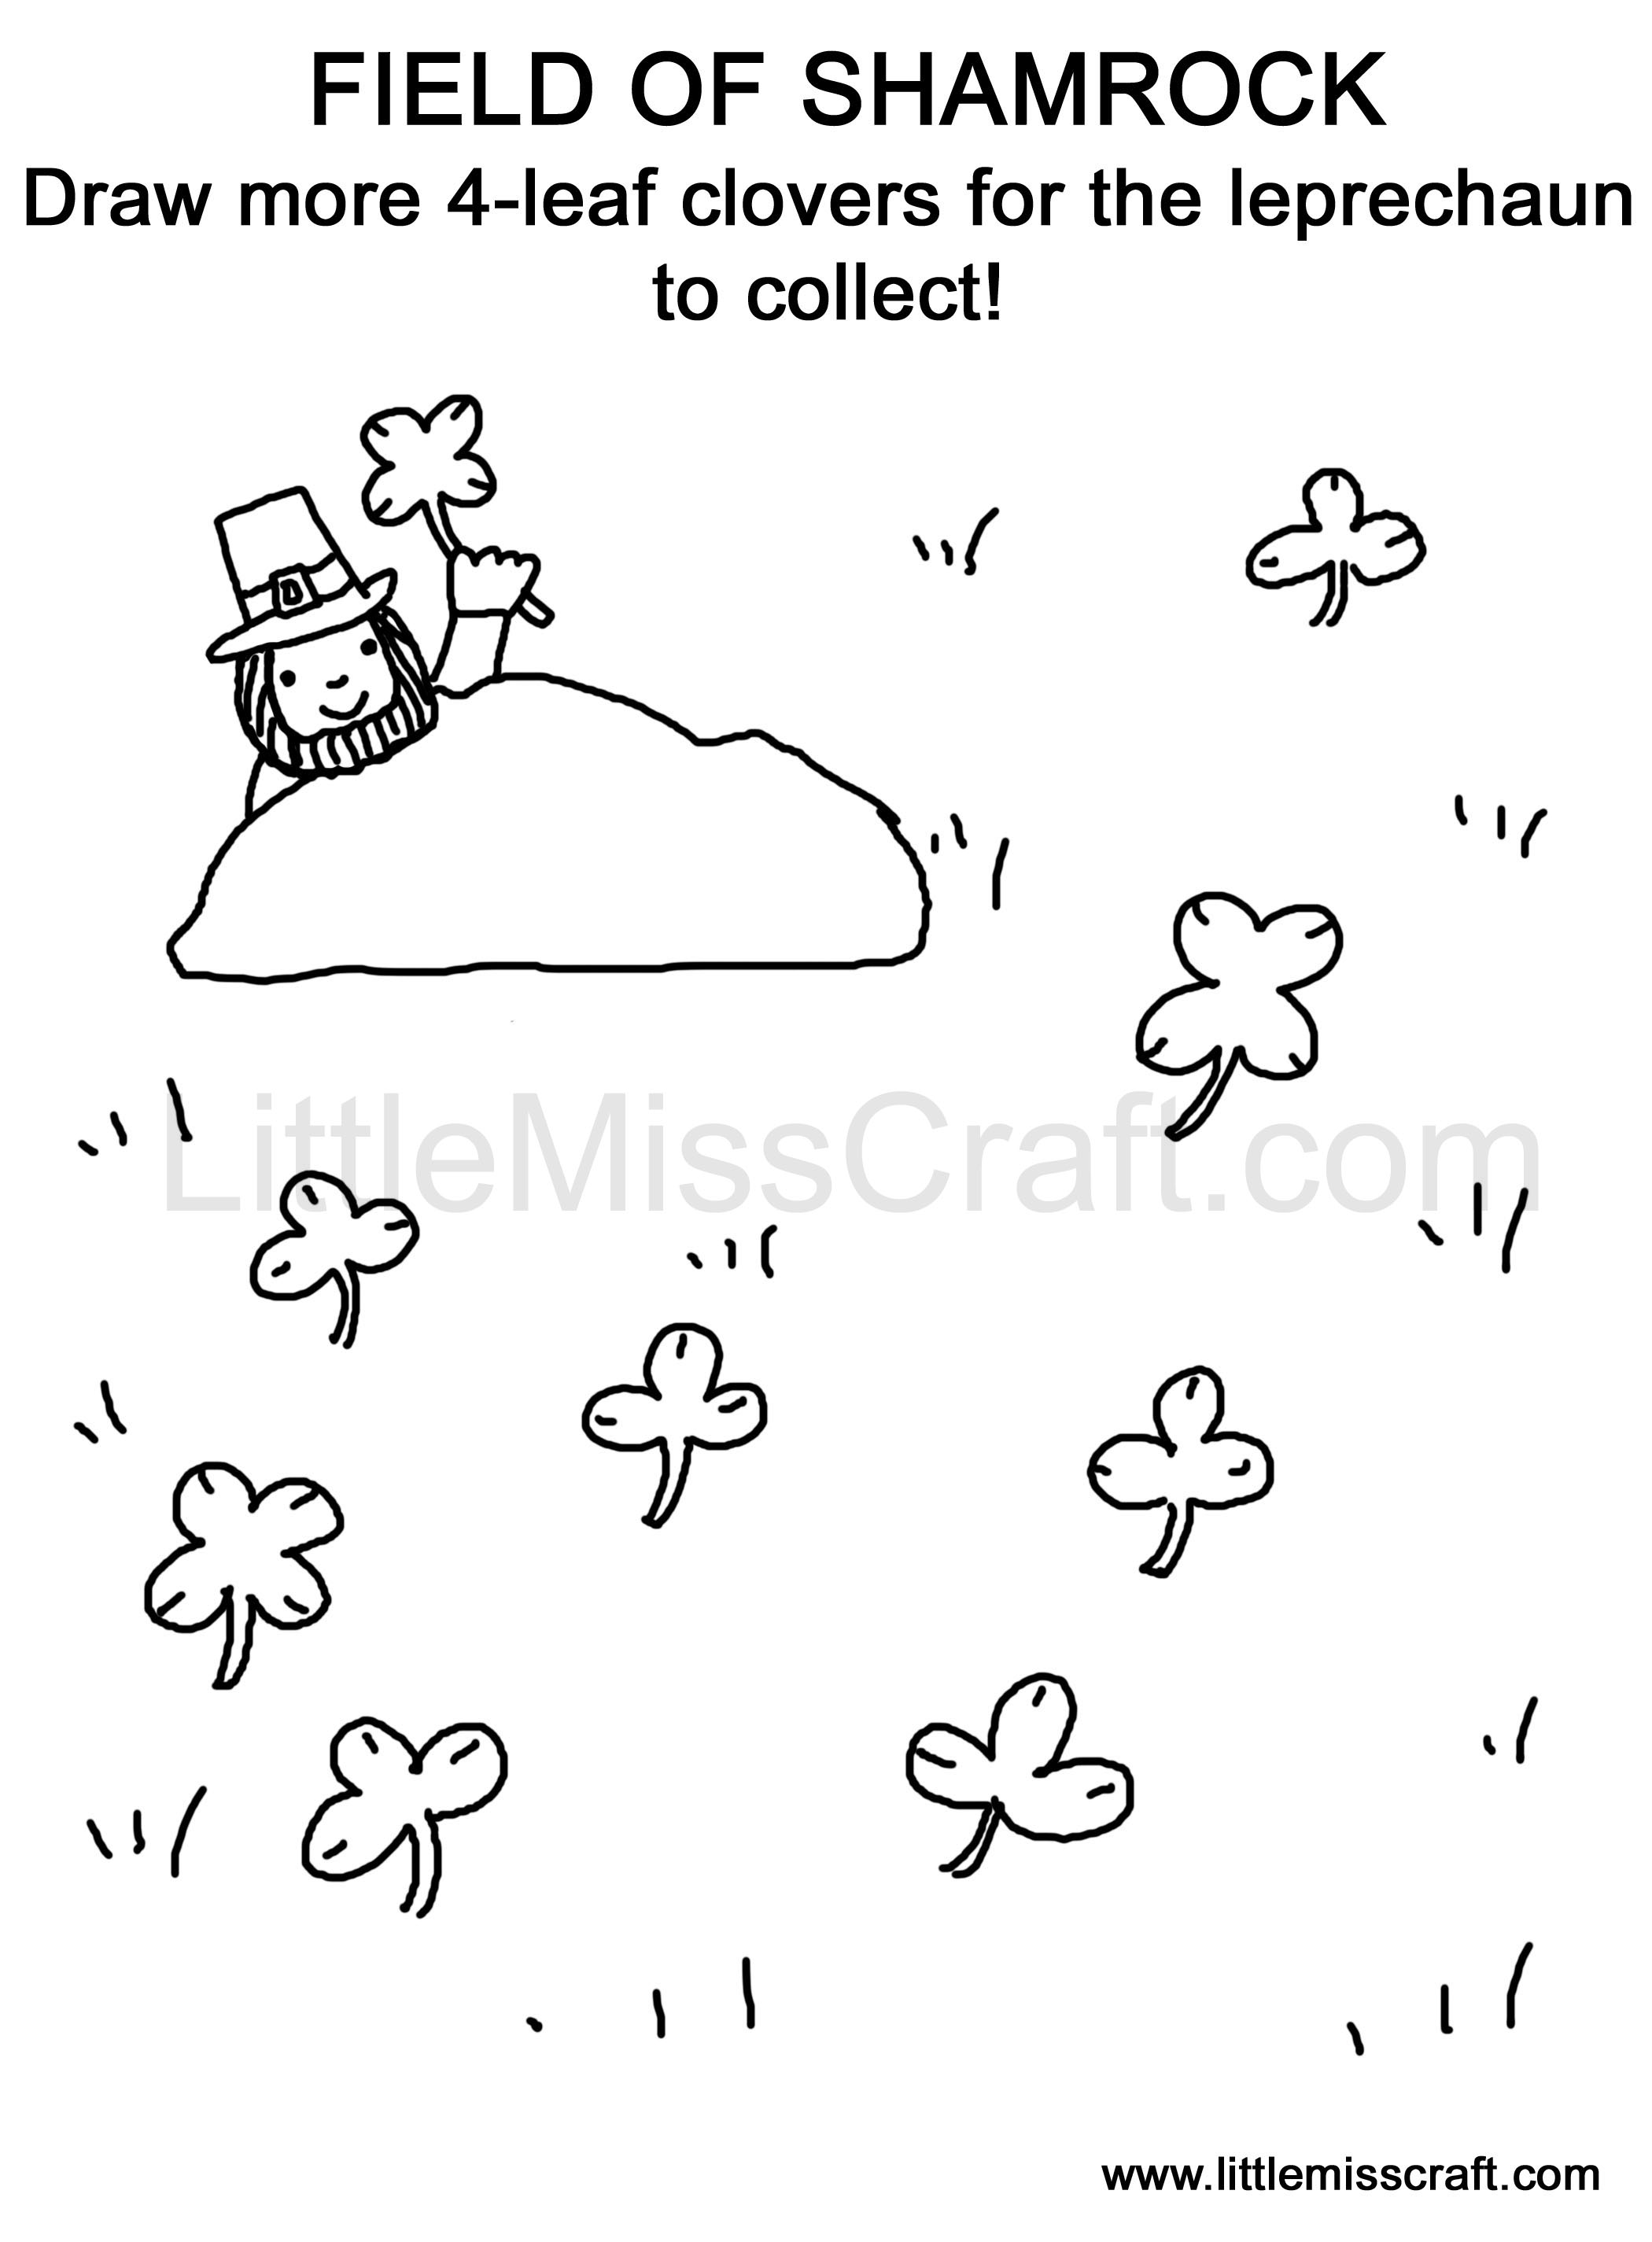 field of shamrock doodle coloring page